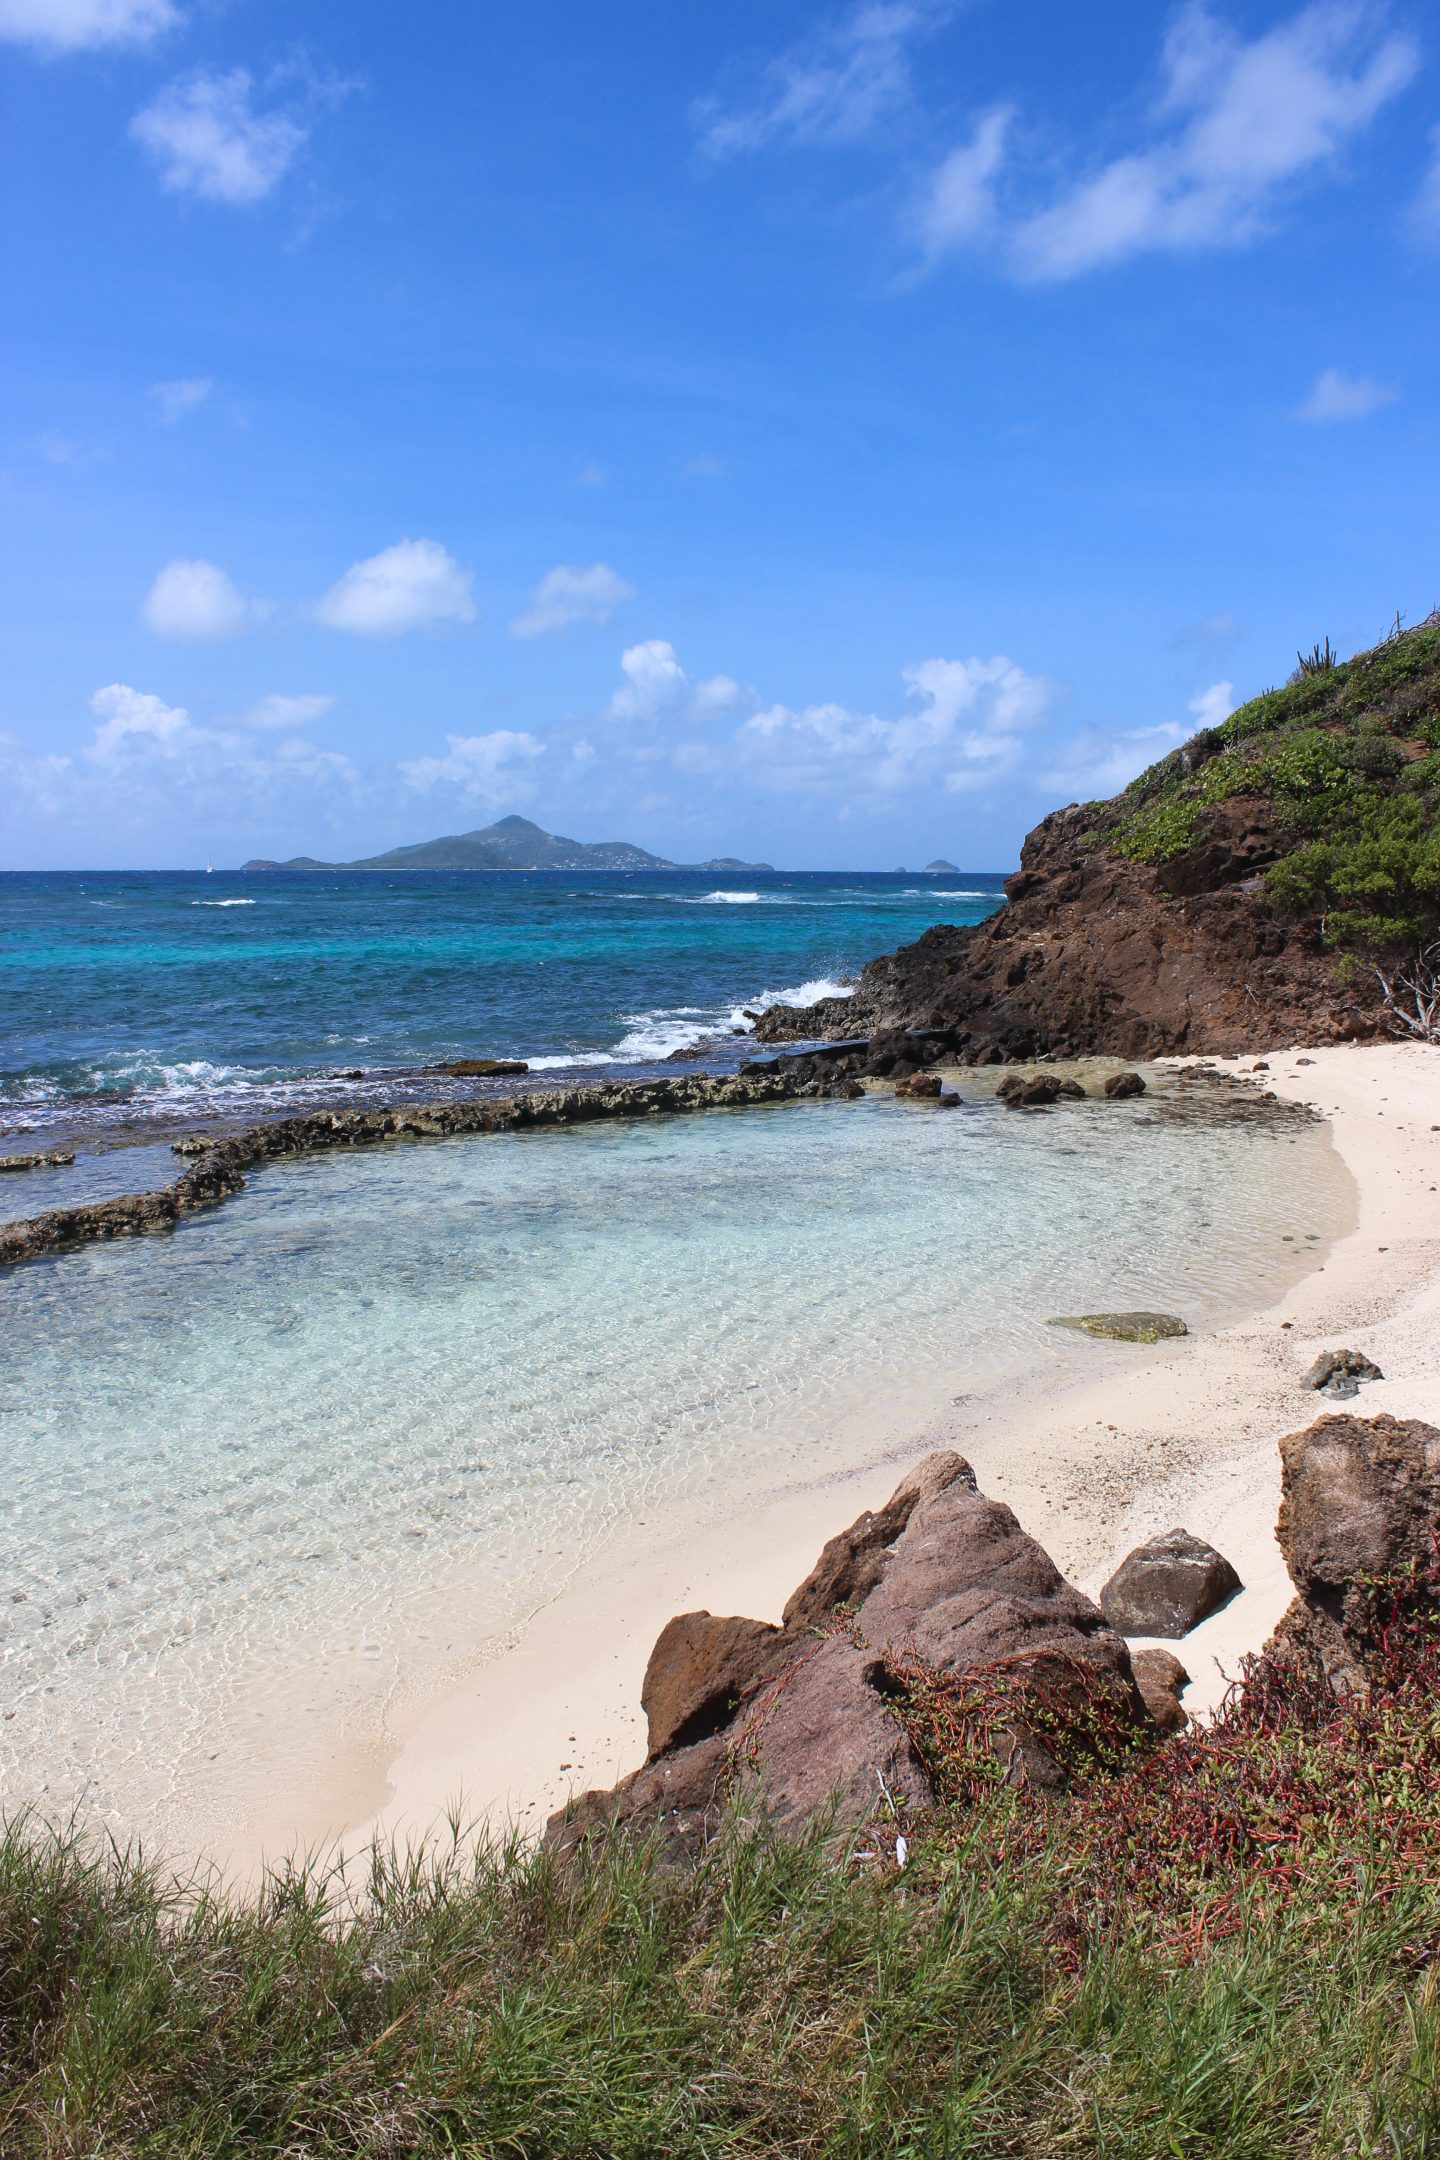 Clutch and carry on - UK Travel blogger - palm island resort, grenadines (349 of 361)